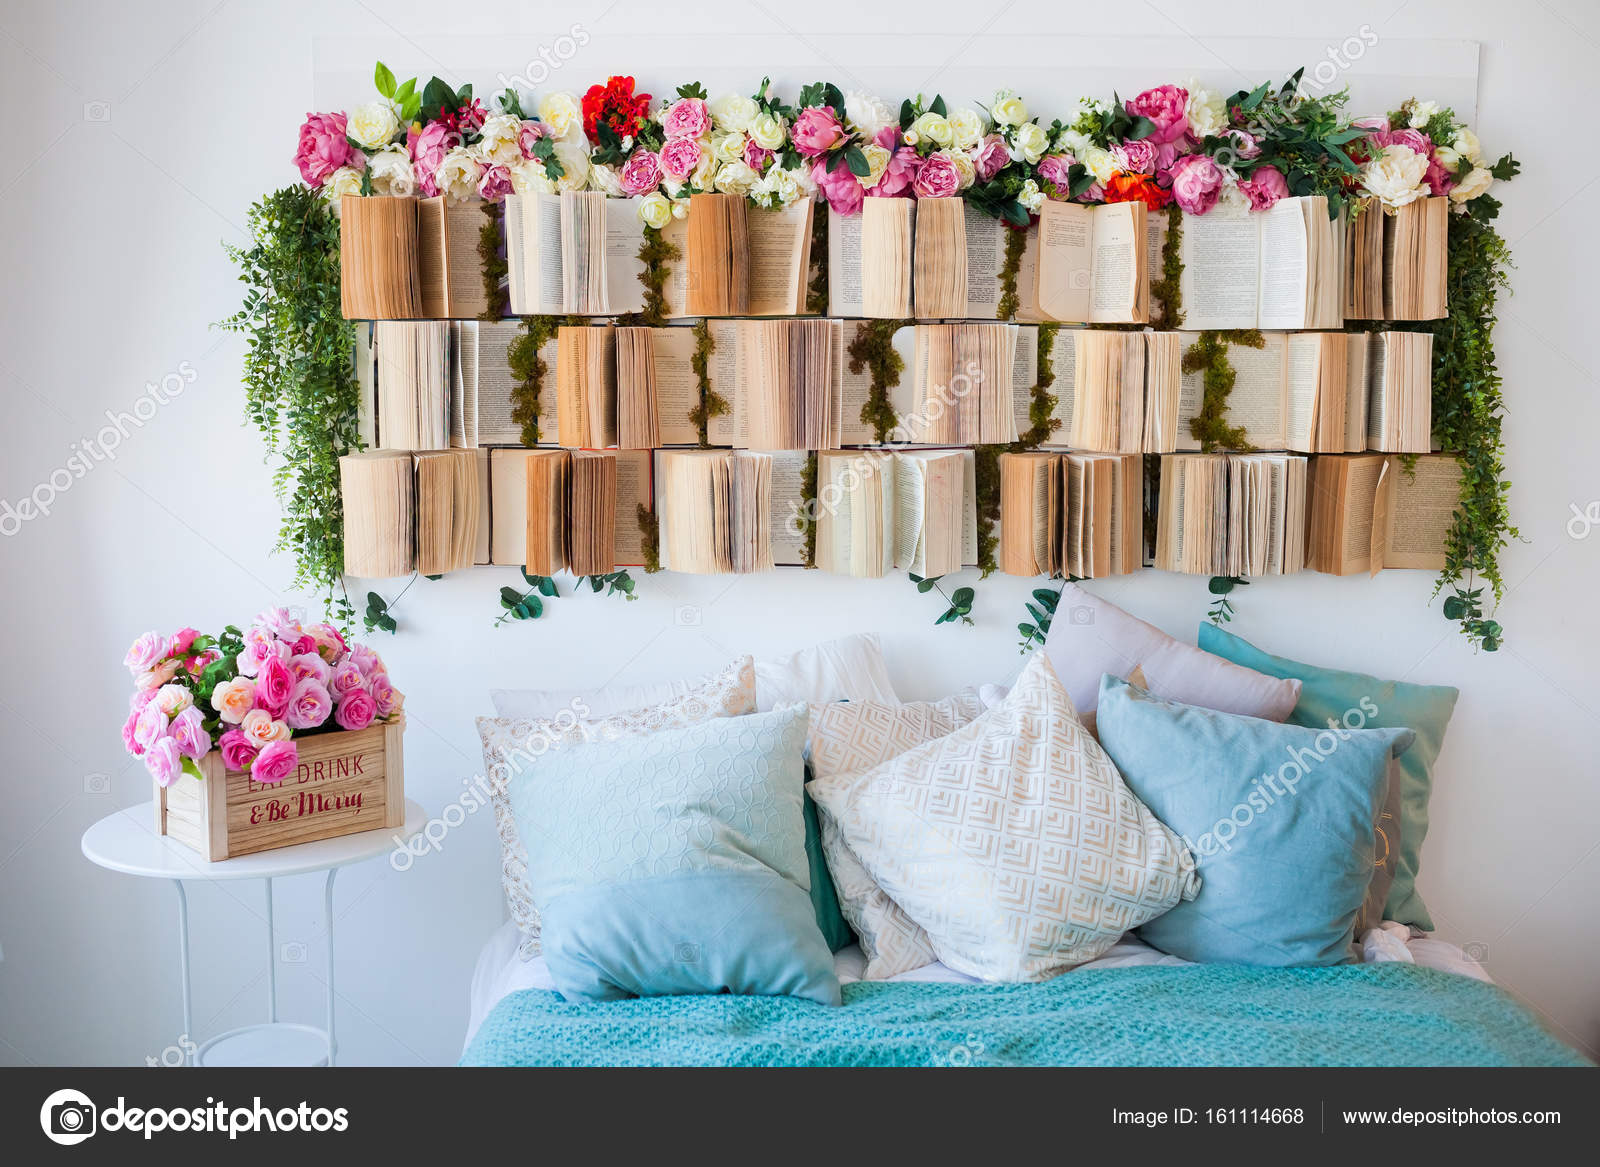 The Unusual Design Of The Bedroom The Headboard Is Decorated With